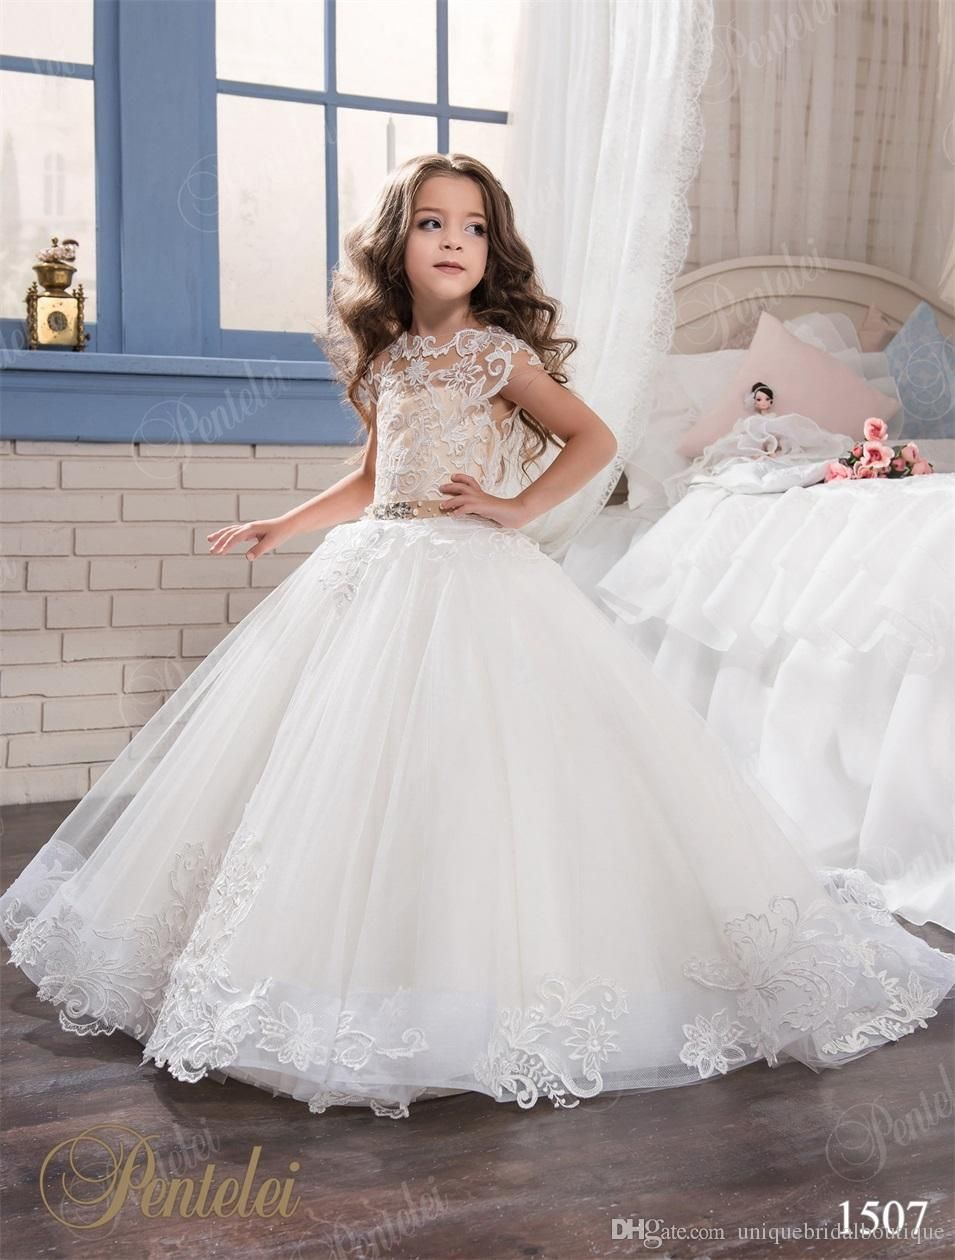 Kids wedding dresses 2017 pentelei with cap sleeves and for Dresses for girls wedding